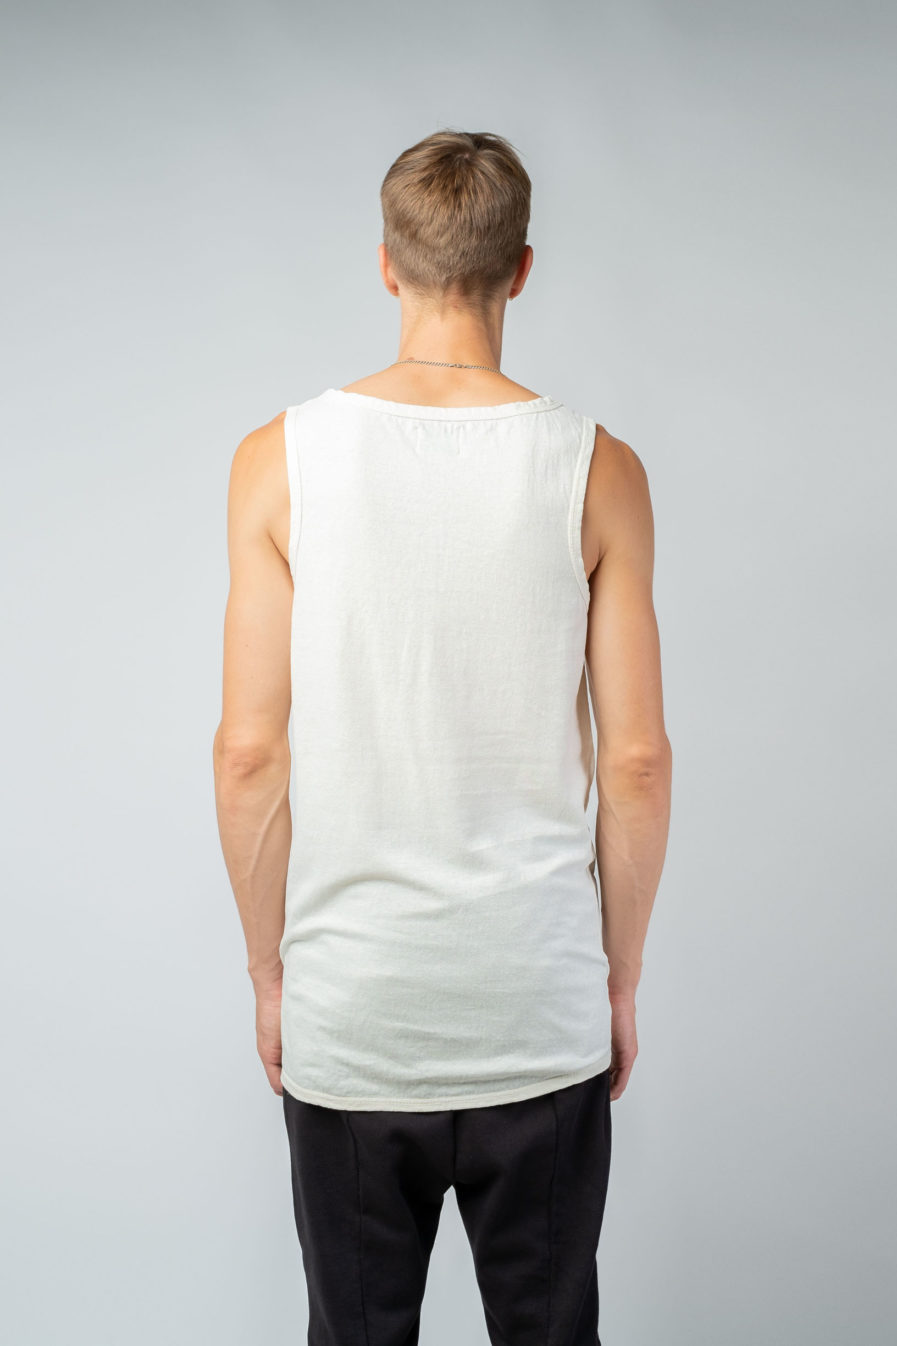 MAN unisex singlet tanktop hemp organic cotton WILLIE Blank canvas back